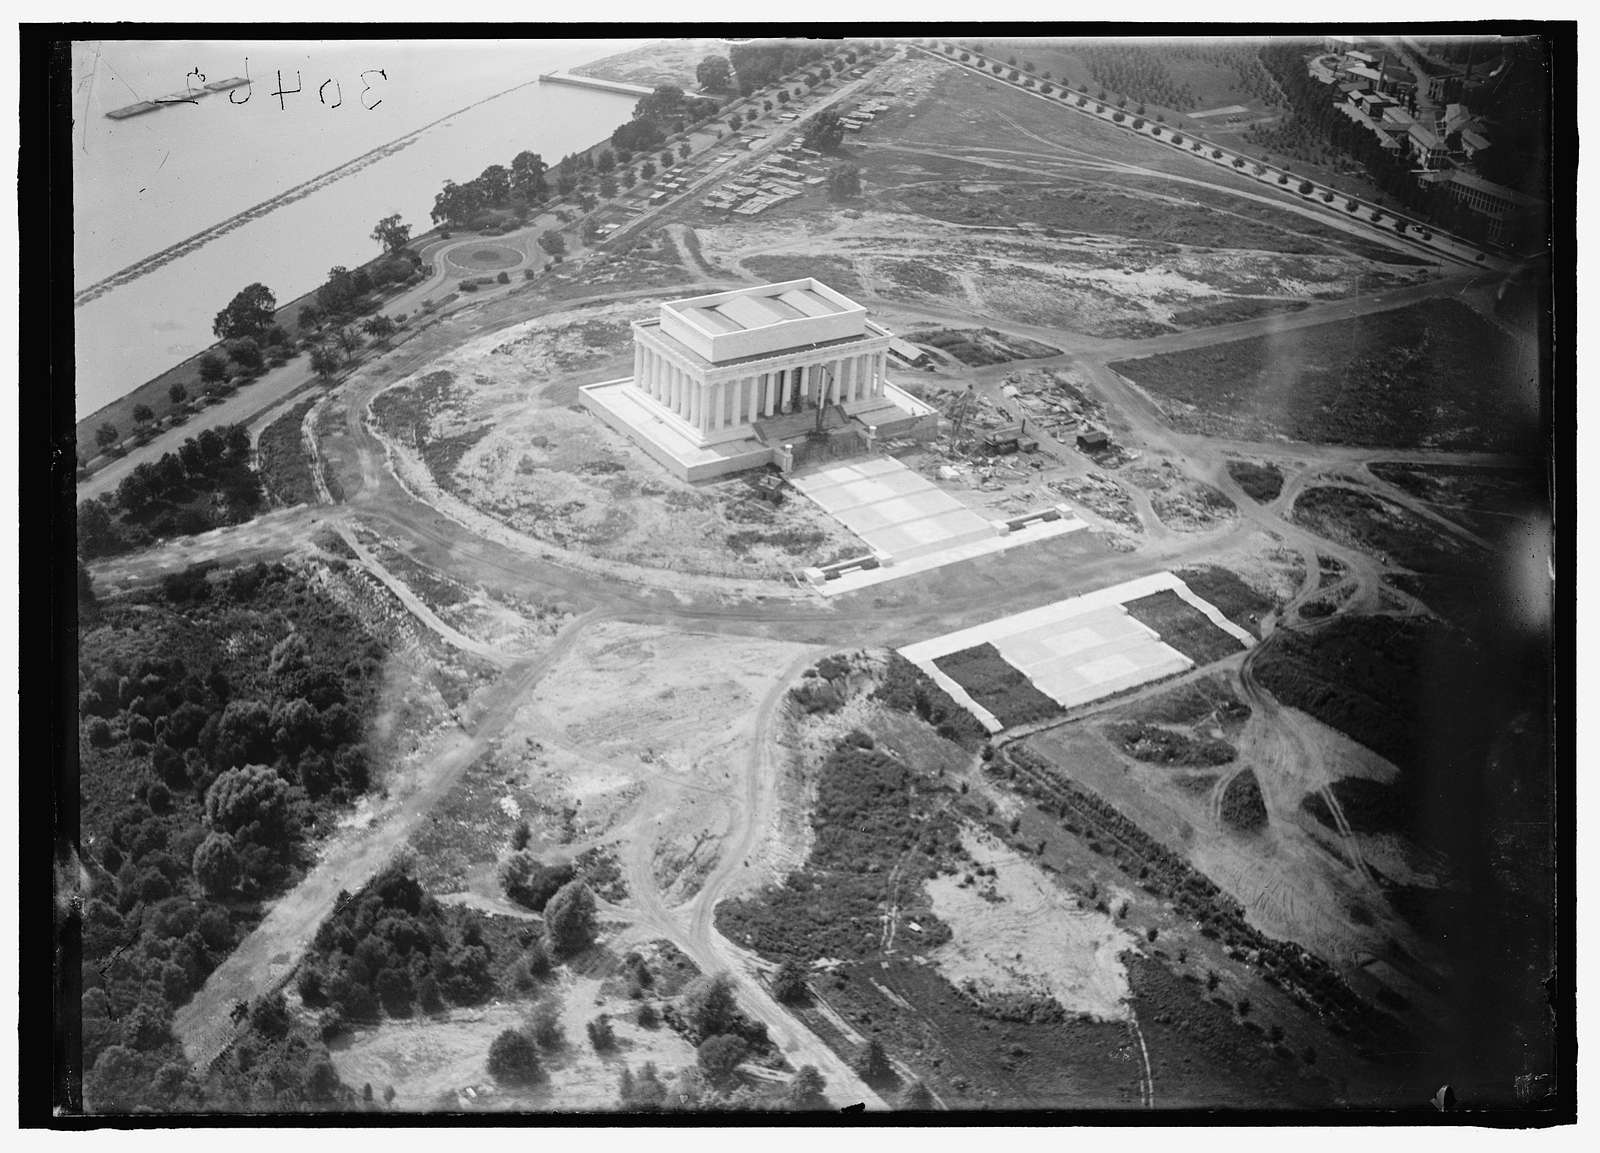 LINCOLN MEMORIAL. UNDER CONSTRUCTION. VIEW FROM AIR